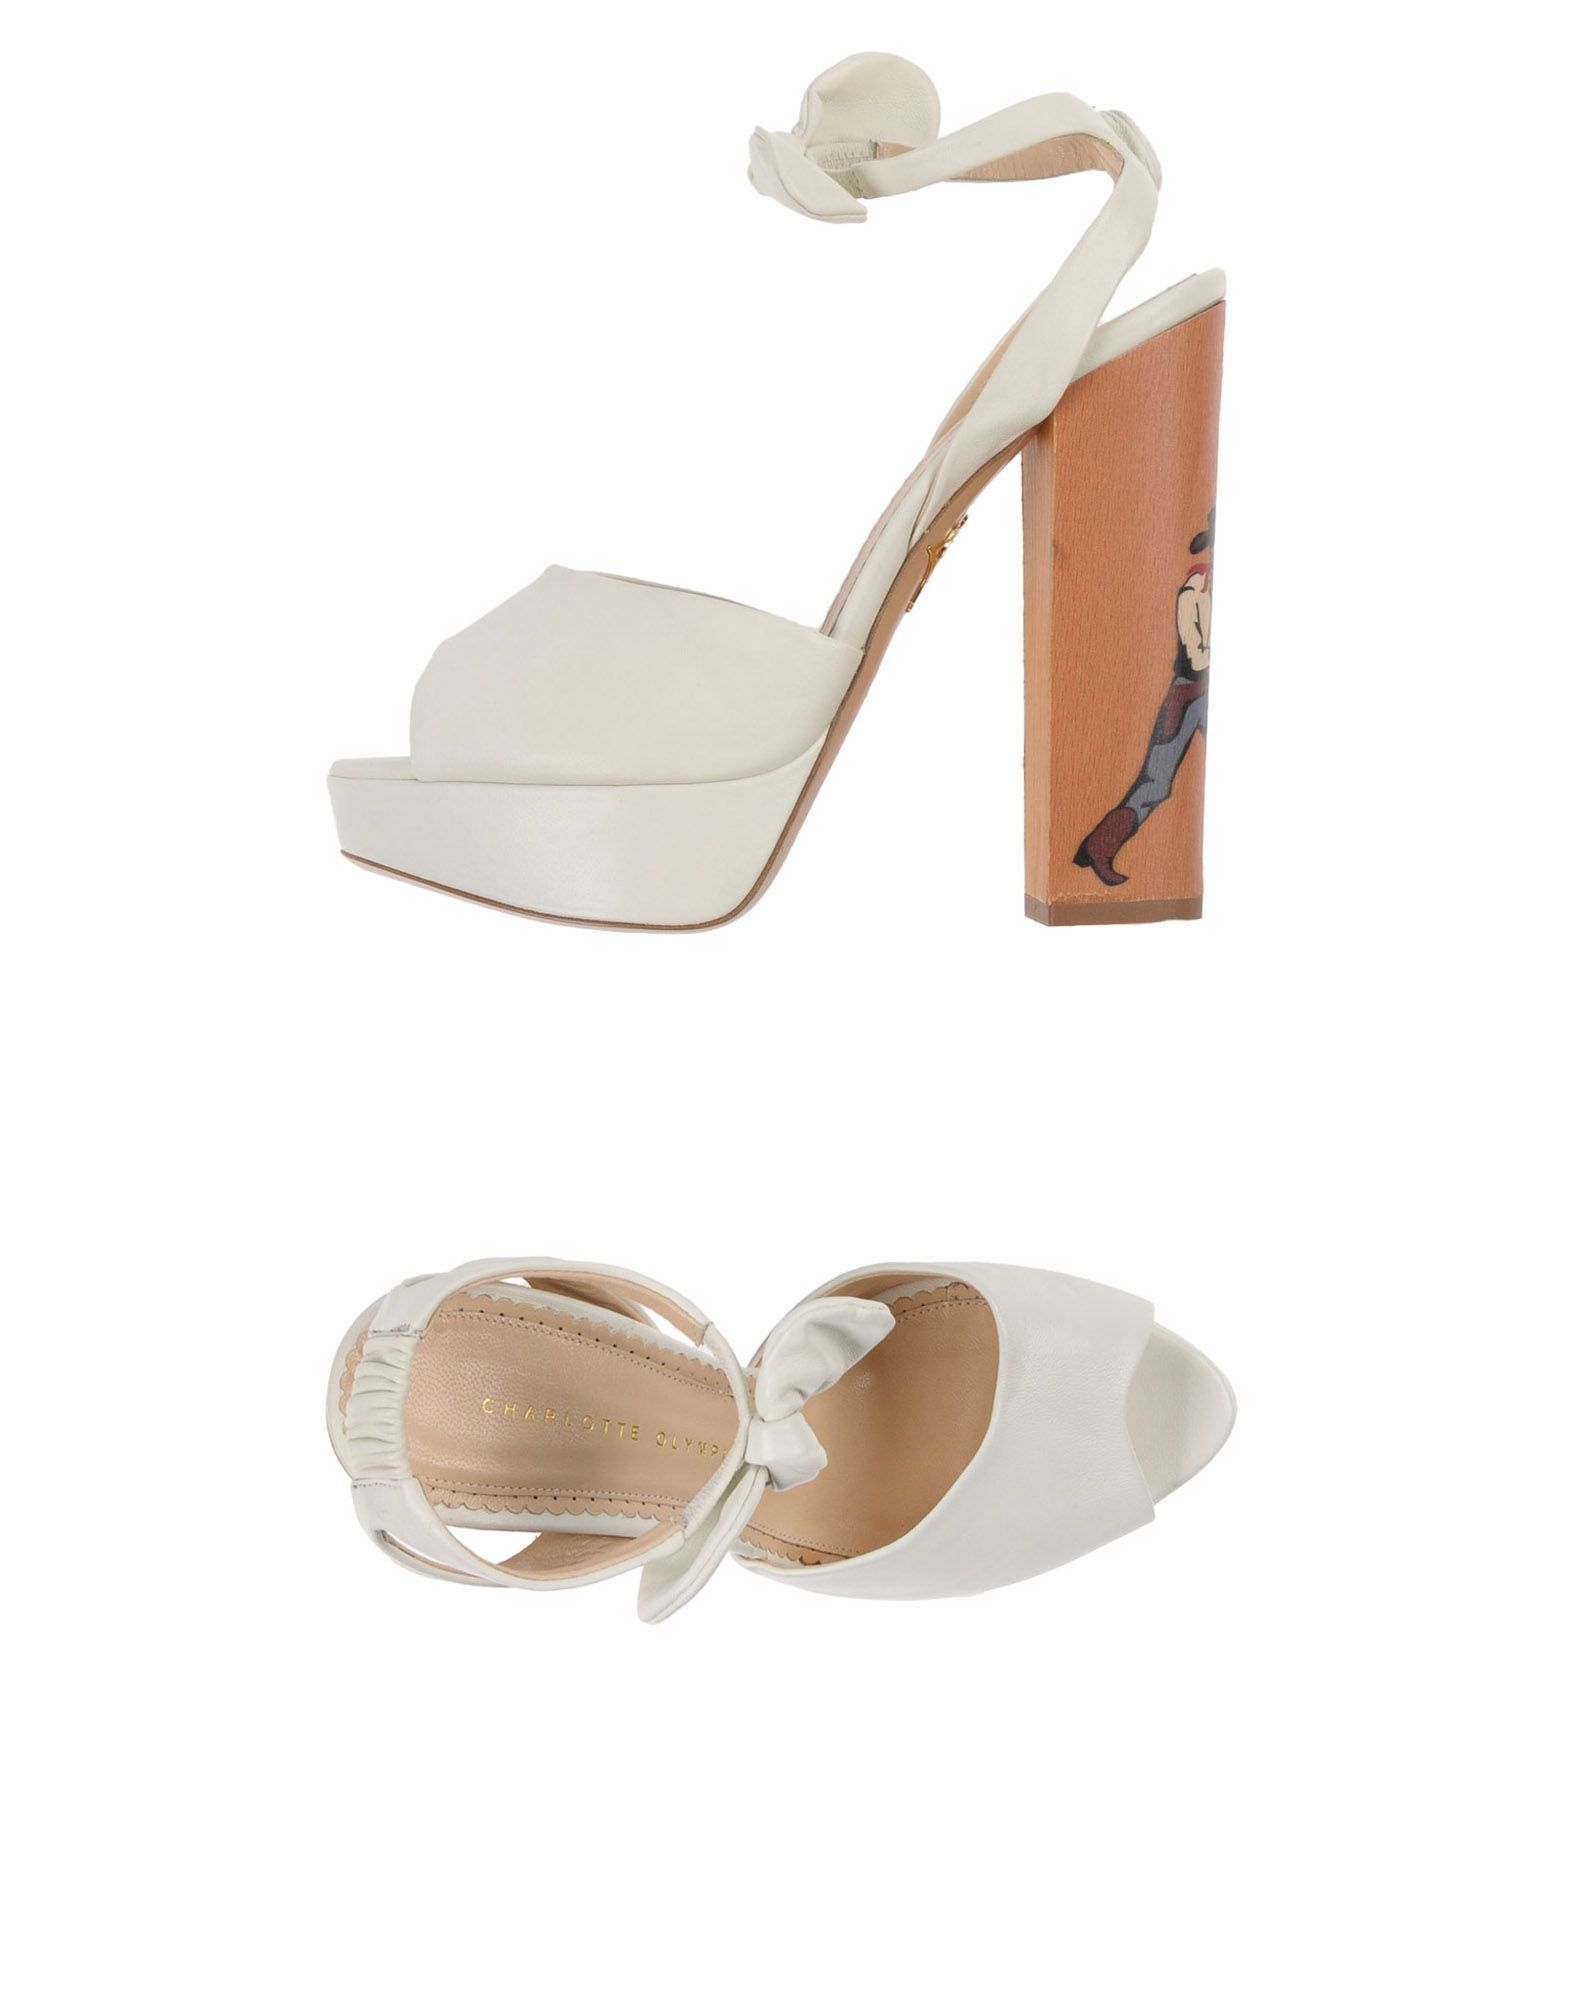 CHARLOTTE OLYMPIA SANDALS.  charlotteolympia  shoes   f3304c3e3